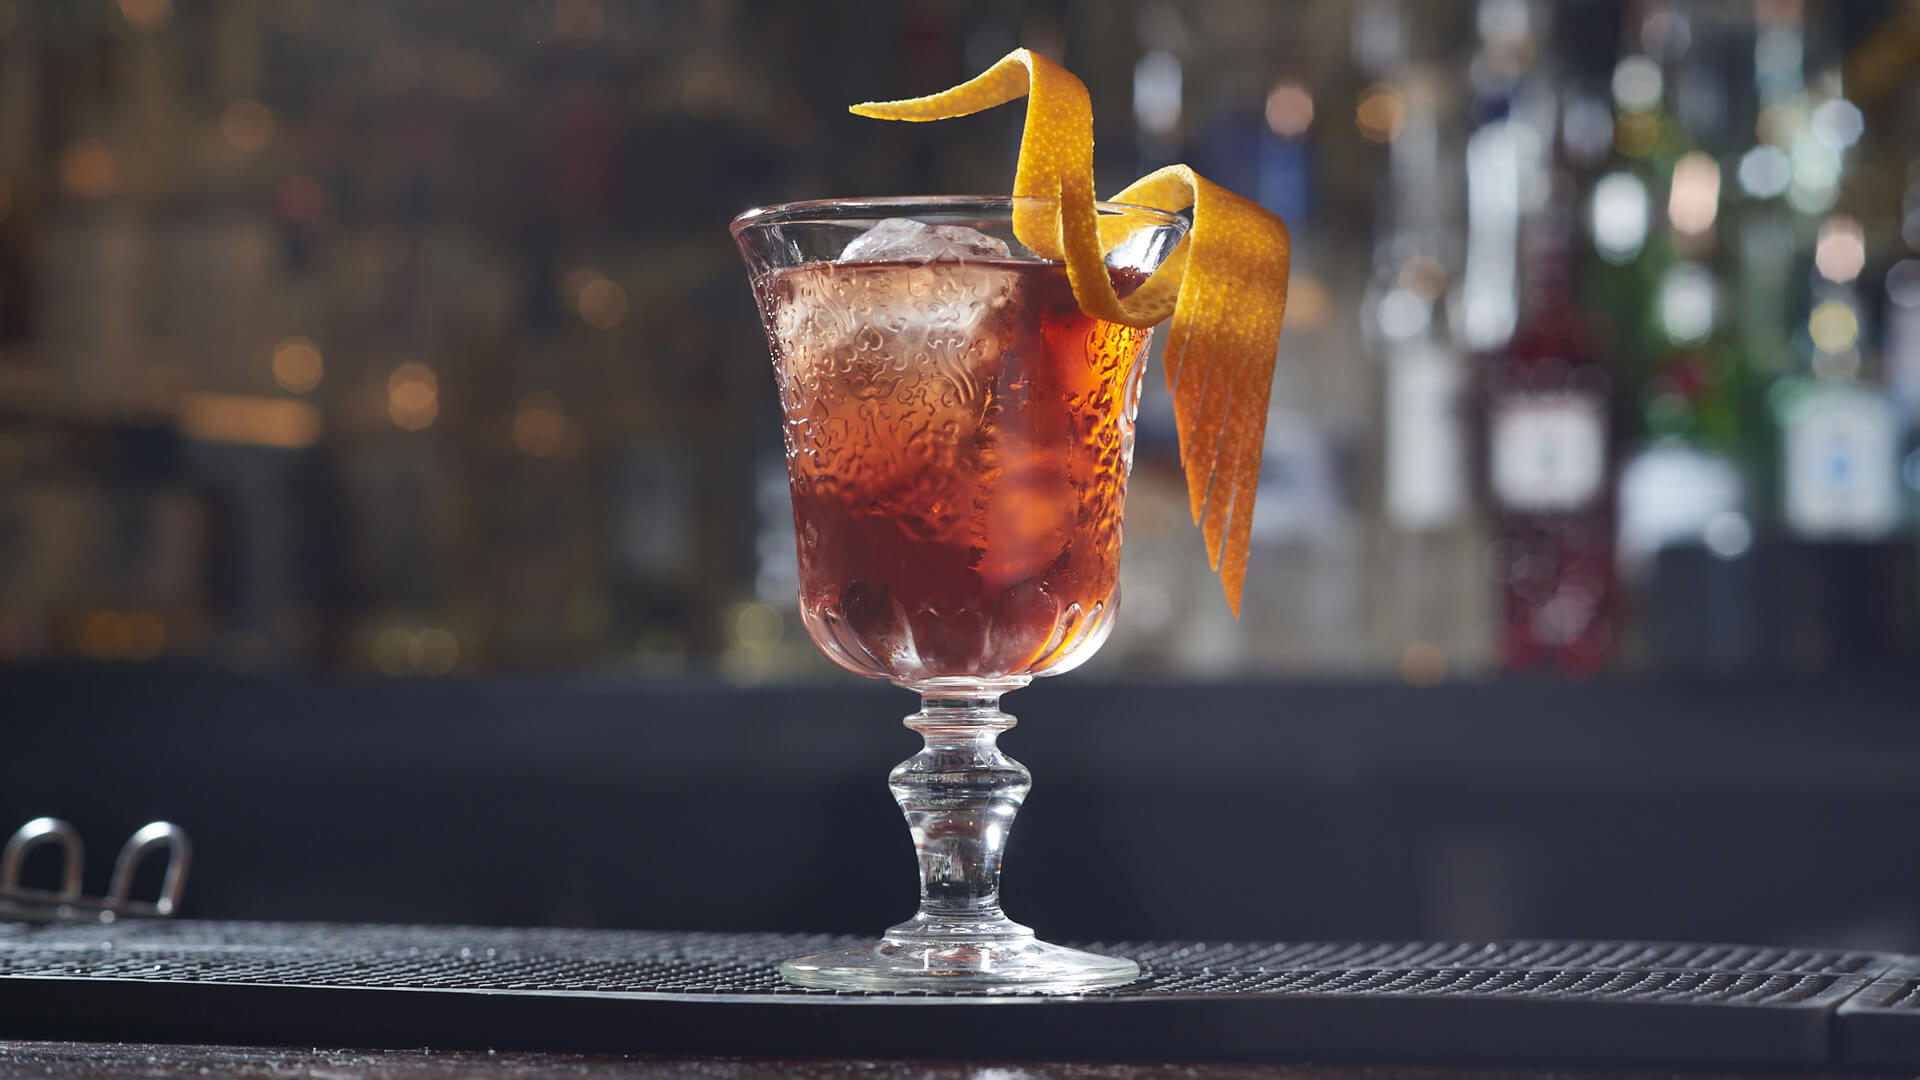 The Burns Cocktail